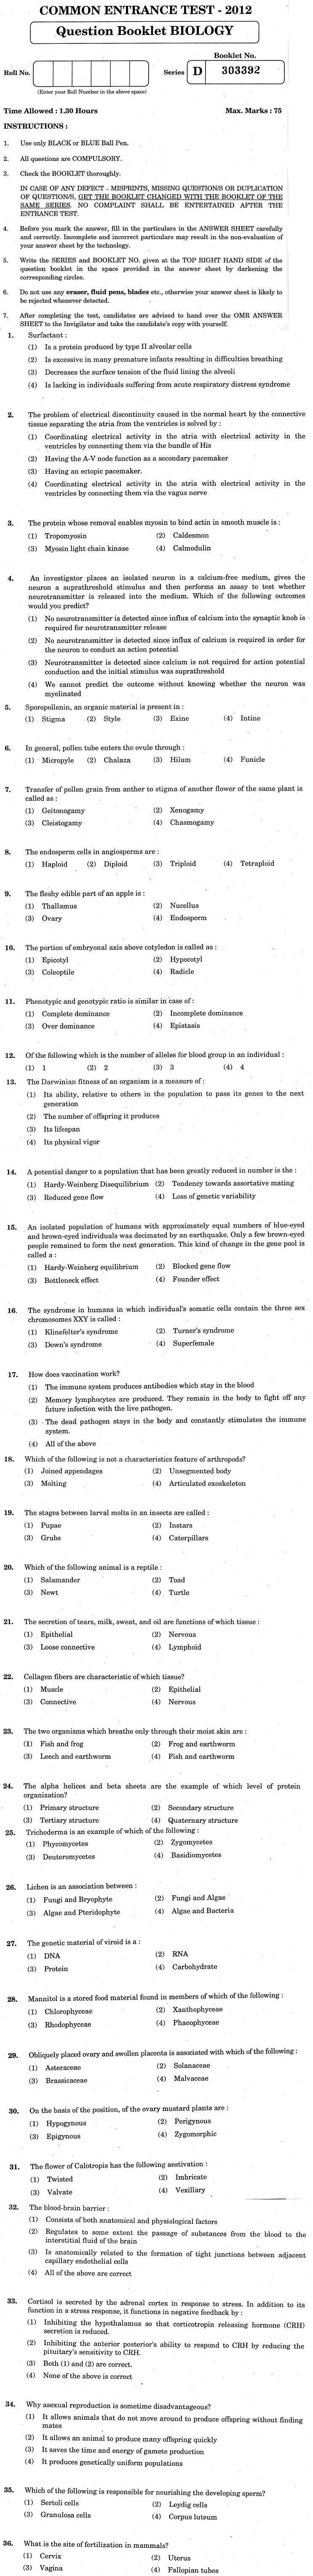 J&K CET 2012 Biology Question Paper